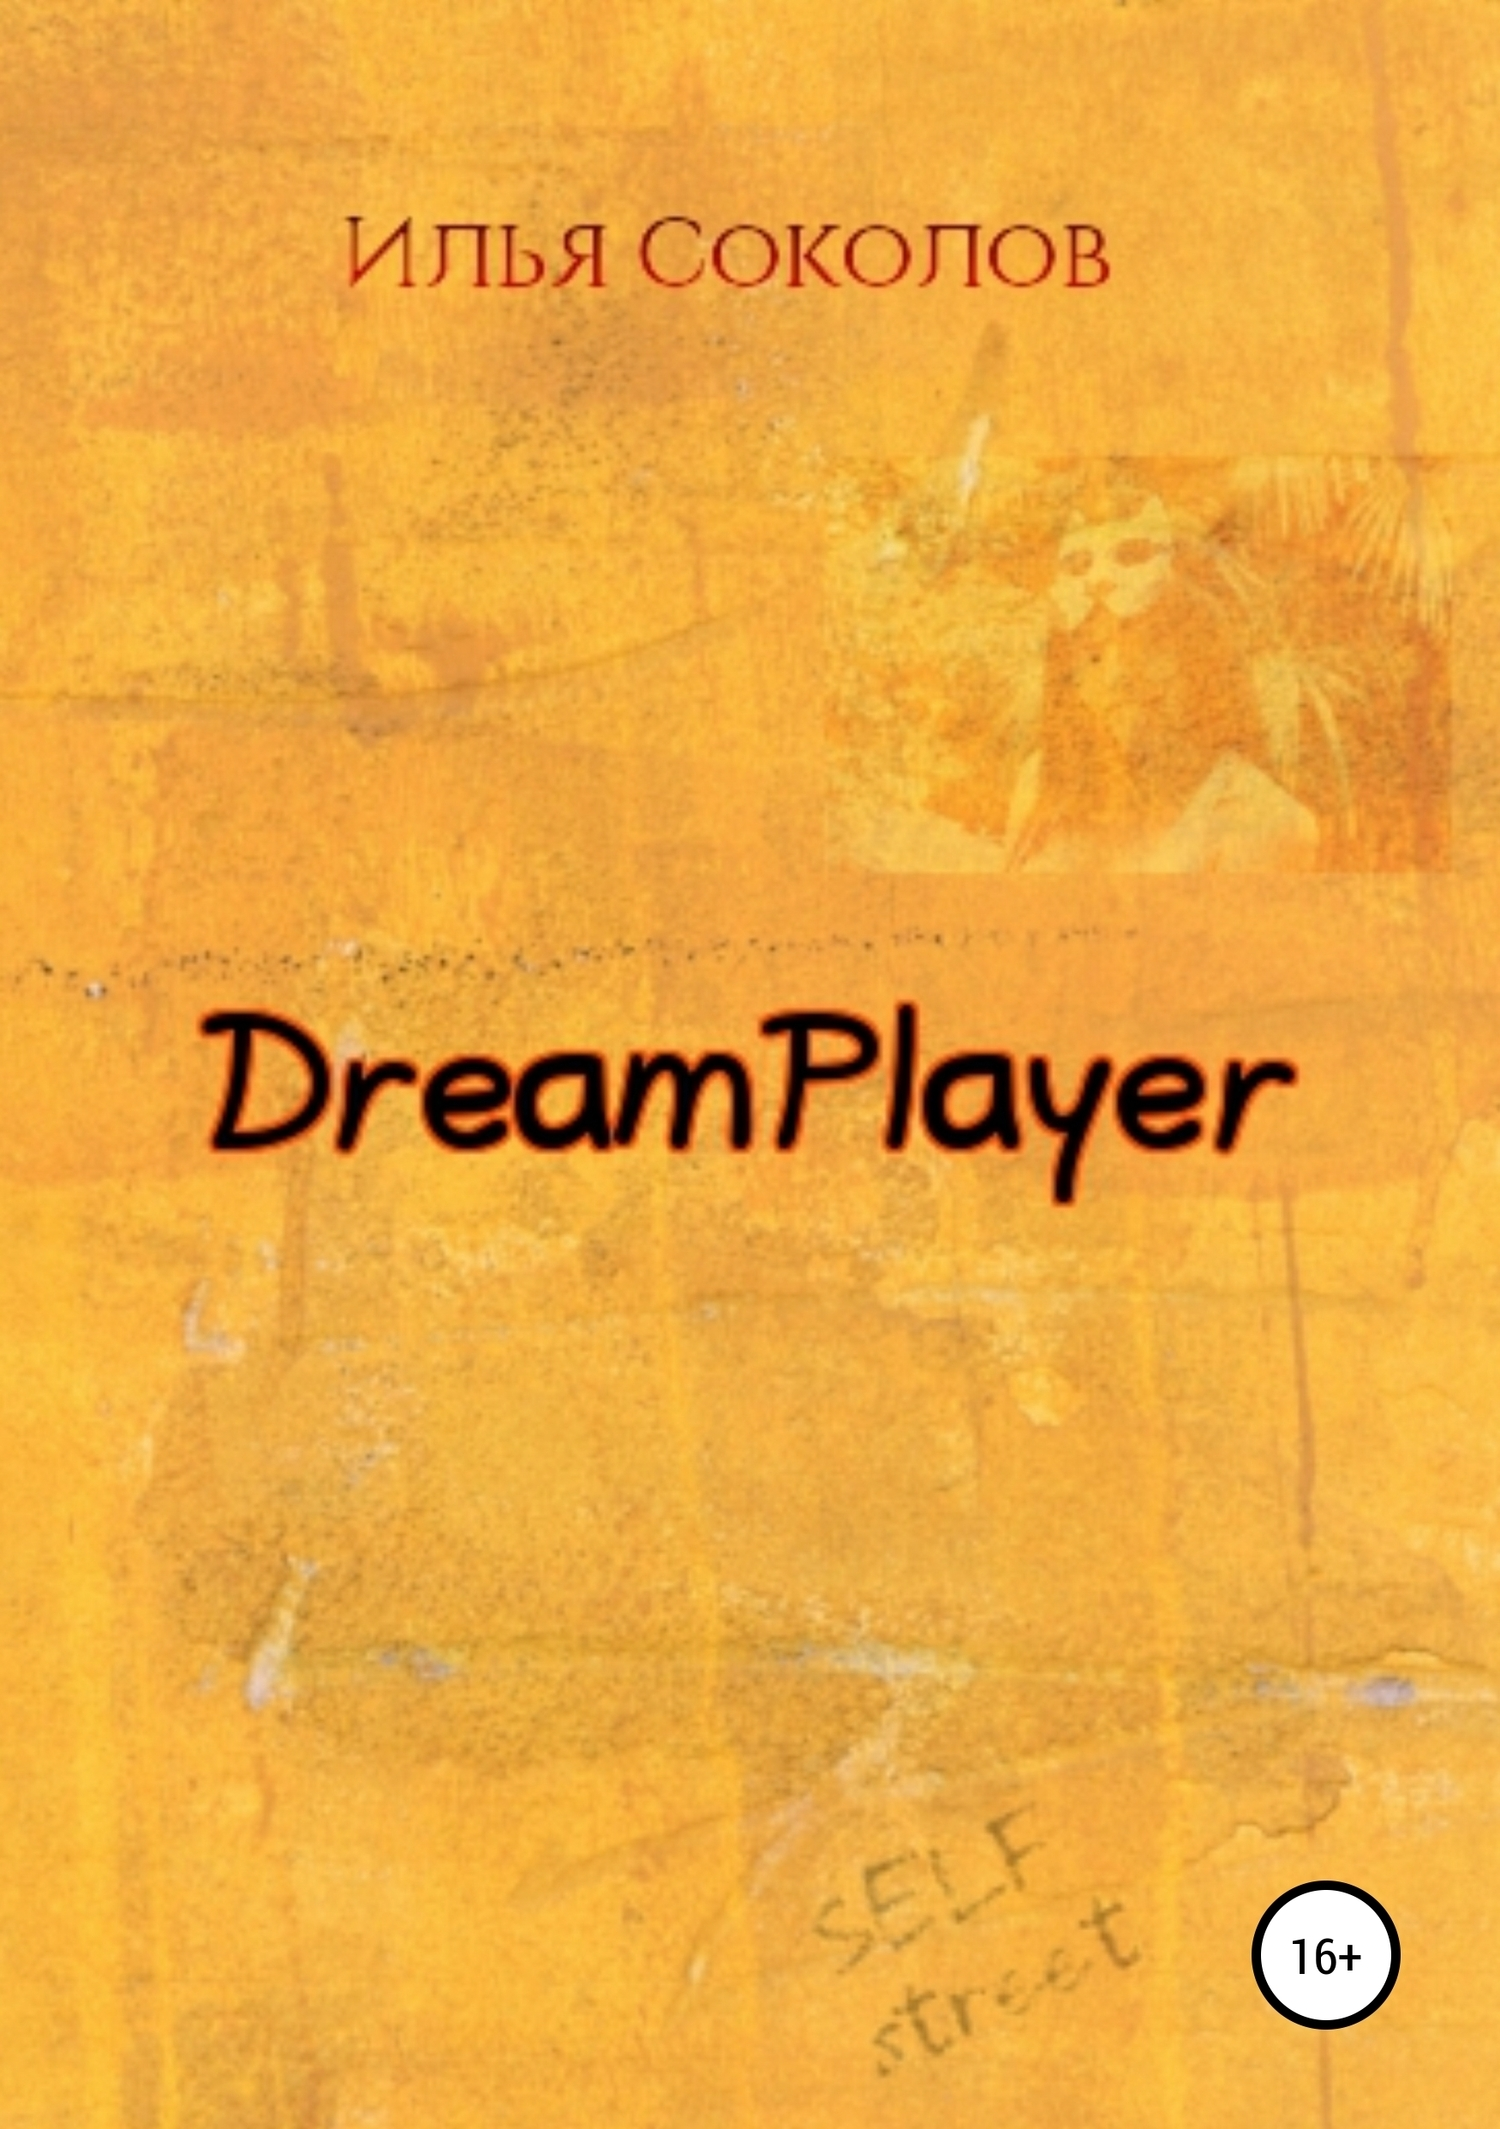 DreamPlayer